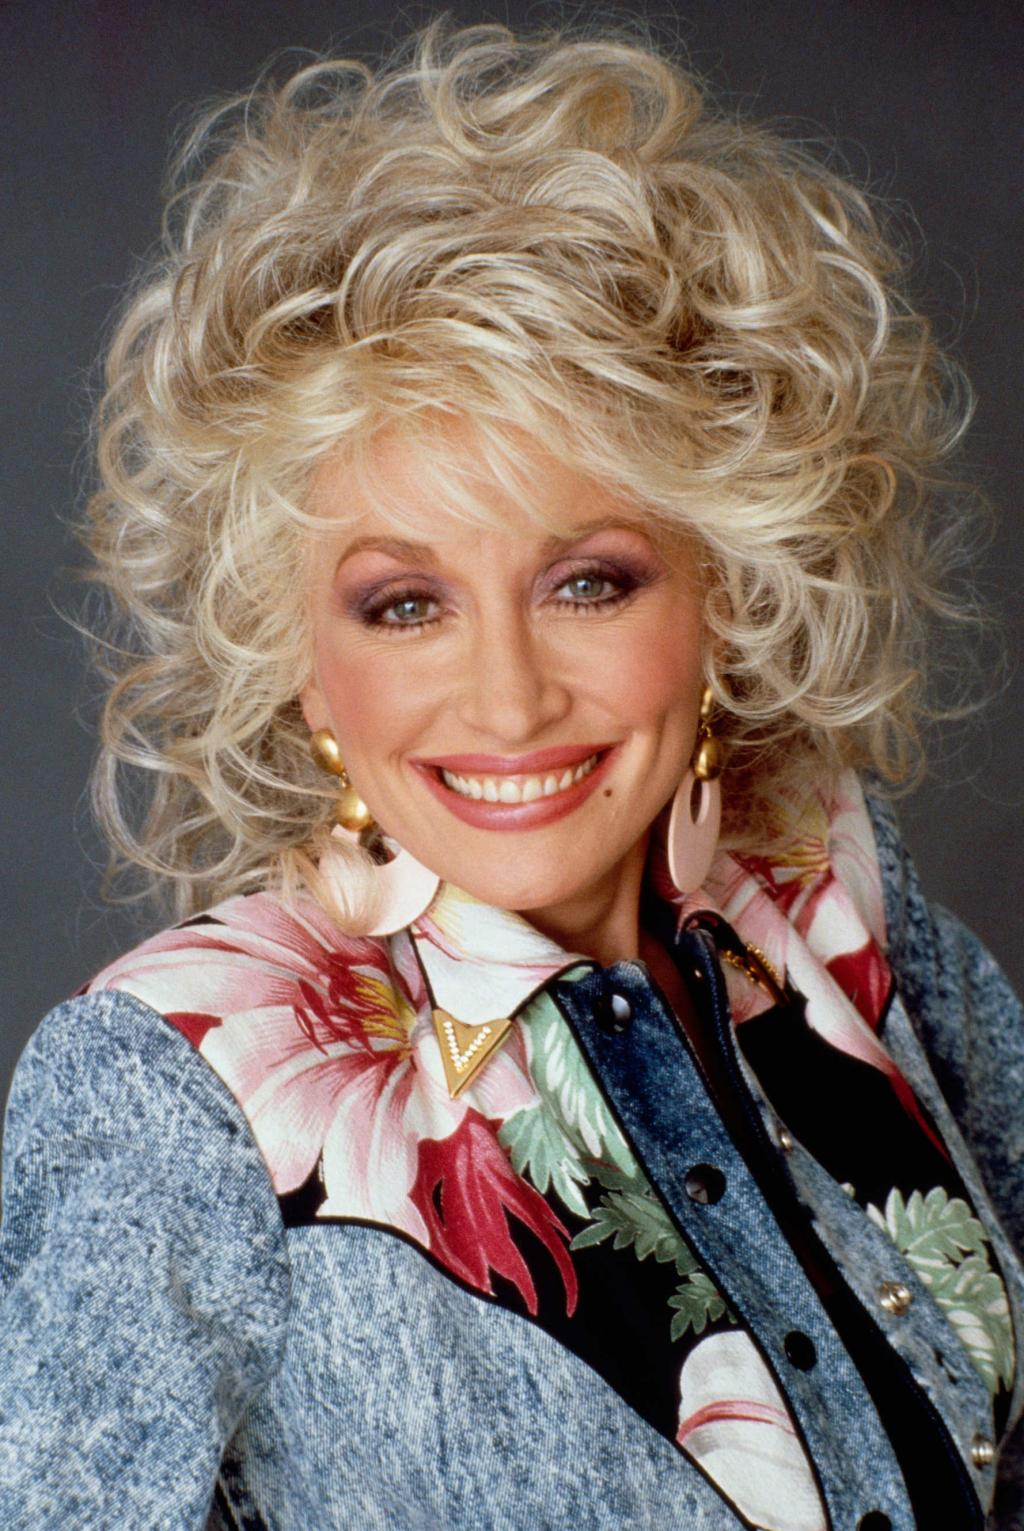 7 Wonders: Happy Birthday Dolly Parton   Wonderland Mag - Wonderland